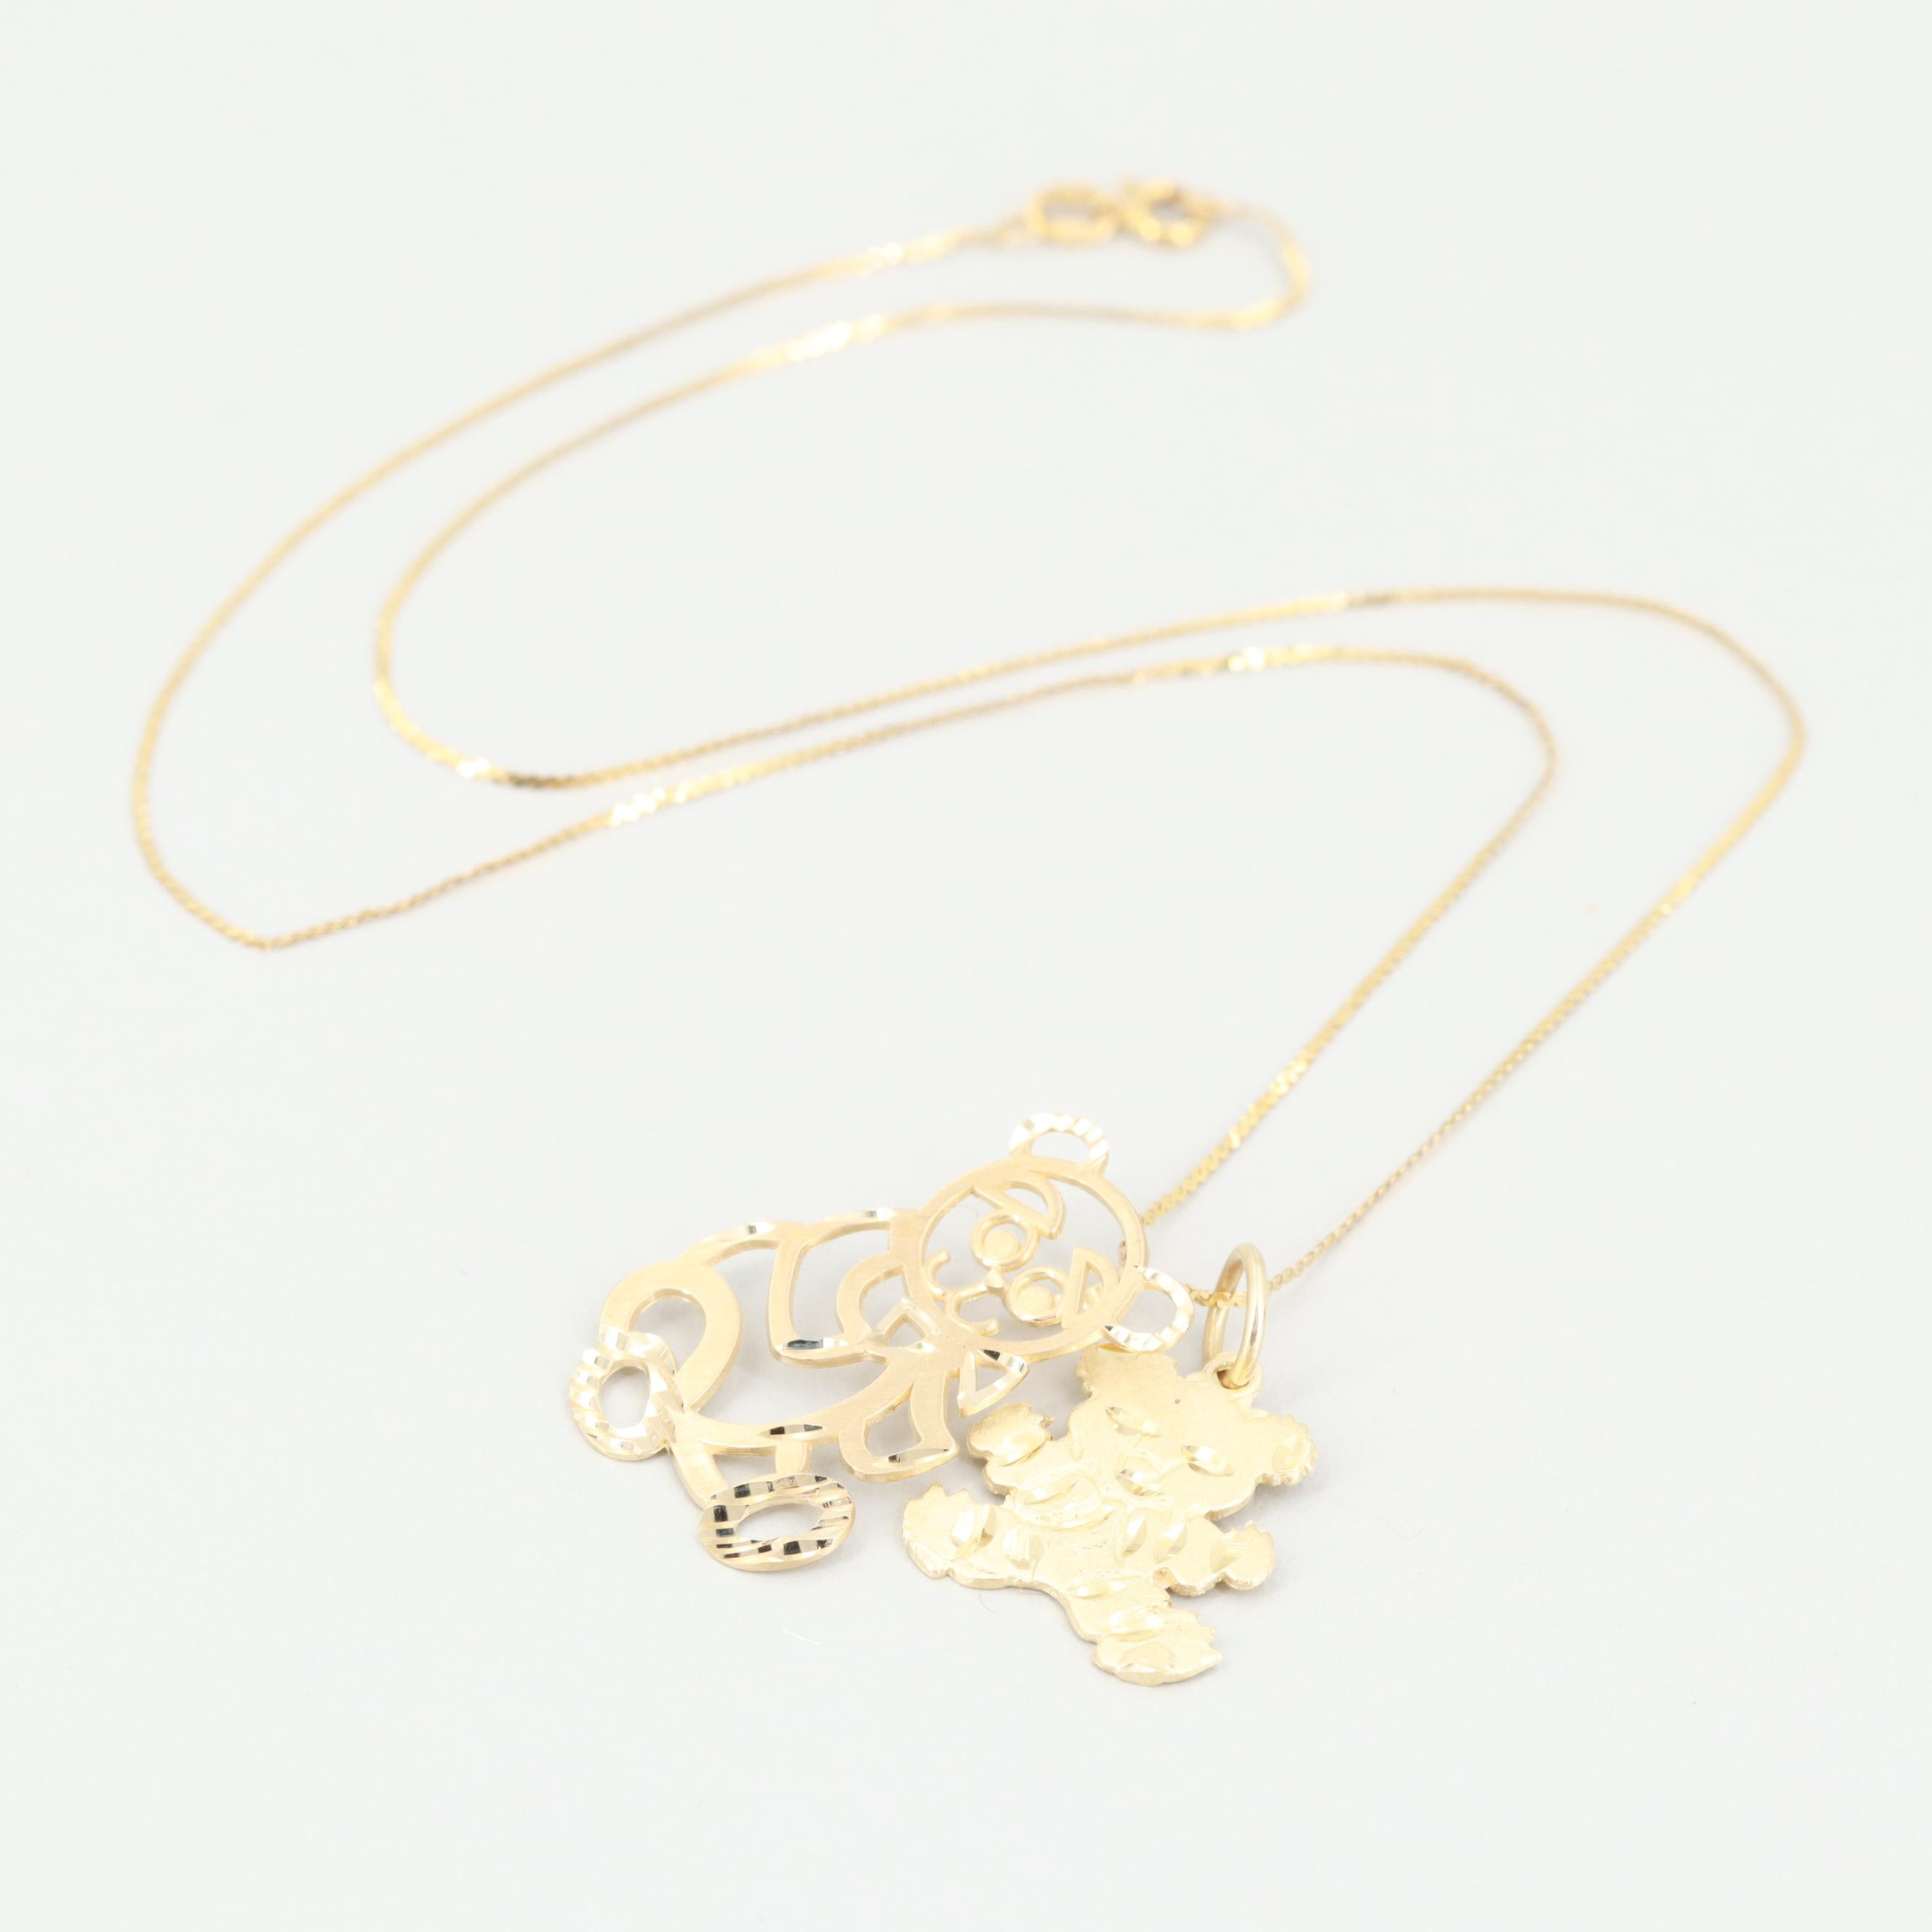 14K Yellow Gold Necklace with Teddy Bear Pendants